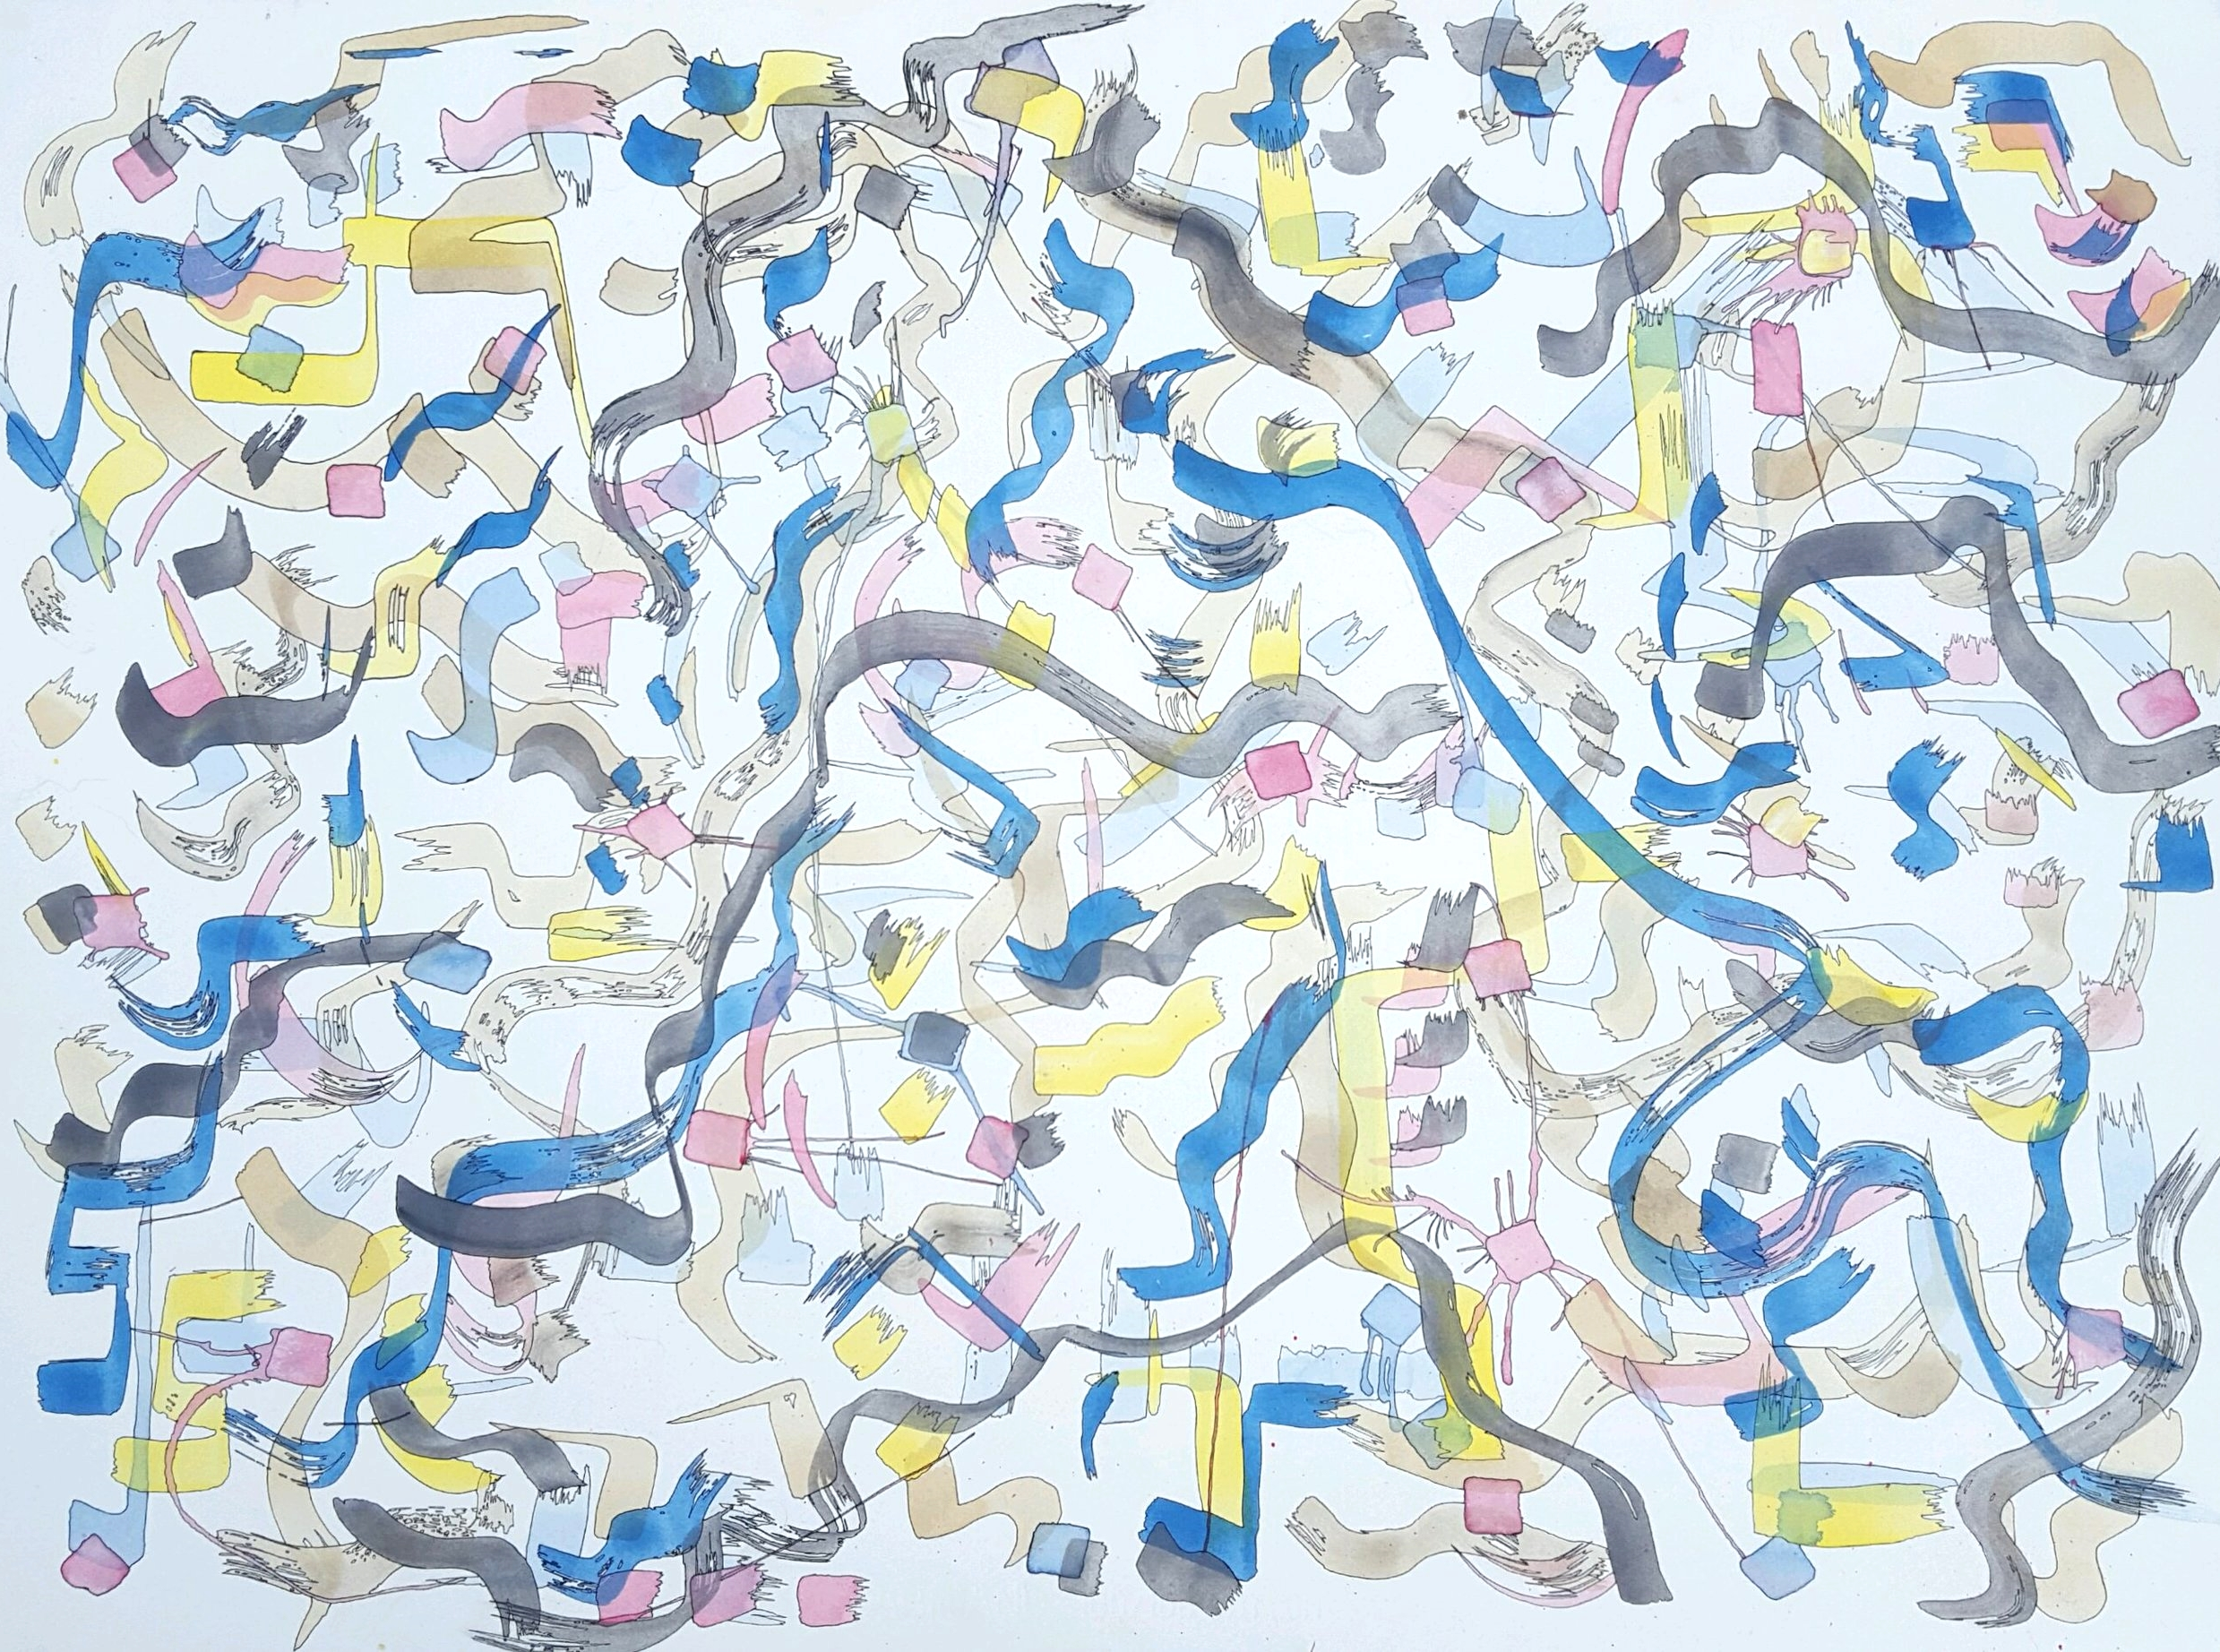 Happy Nothing or Ribbons Floating Freely, 2016